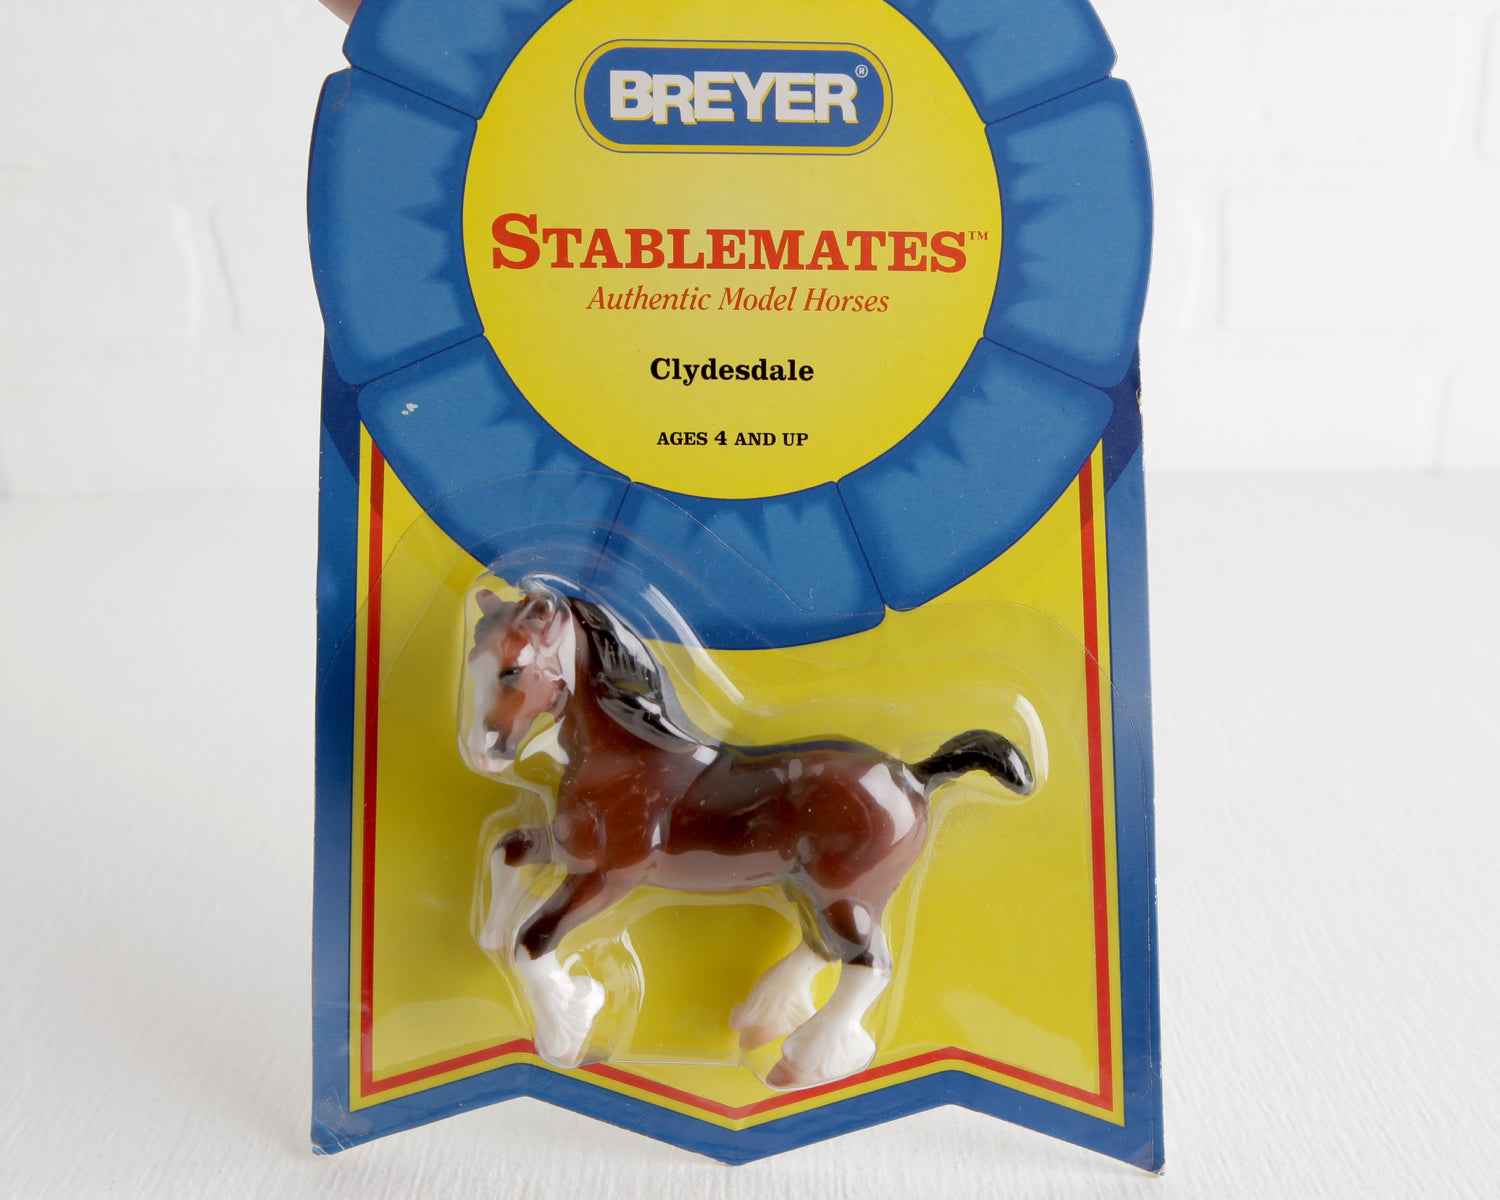 Breyer Stablemate #5604 Bay Clydesdale at Lobster Bisque Vintage